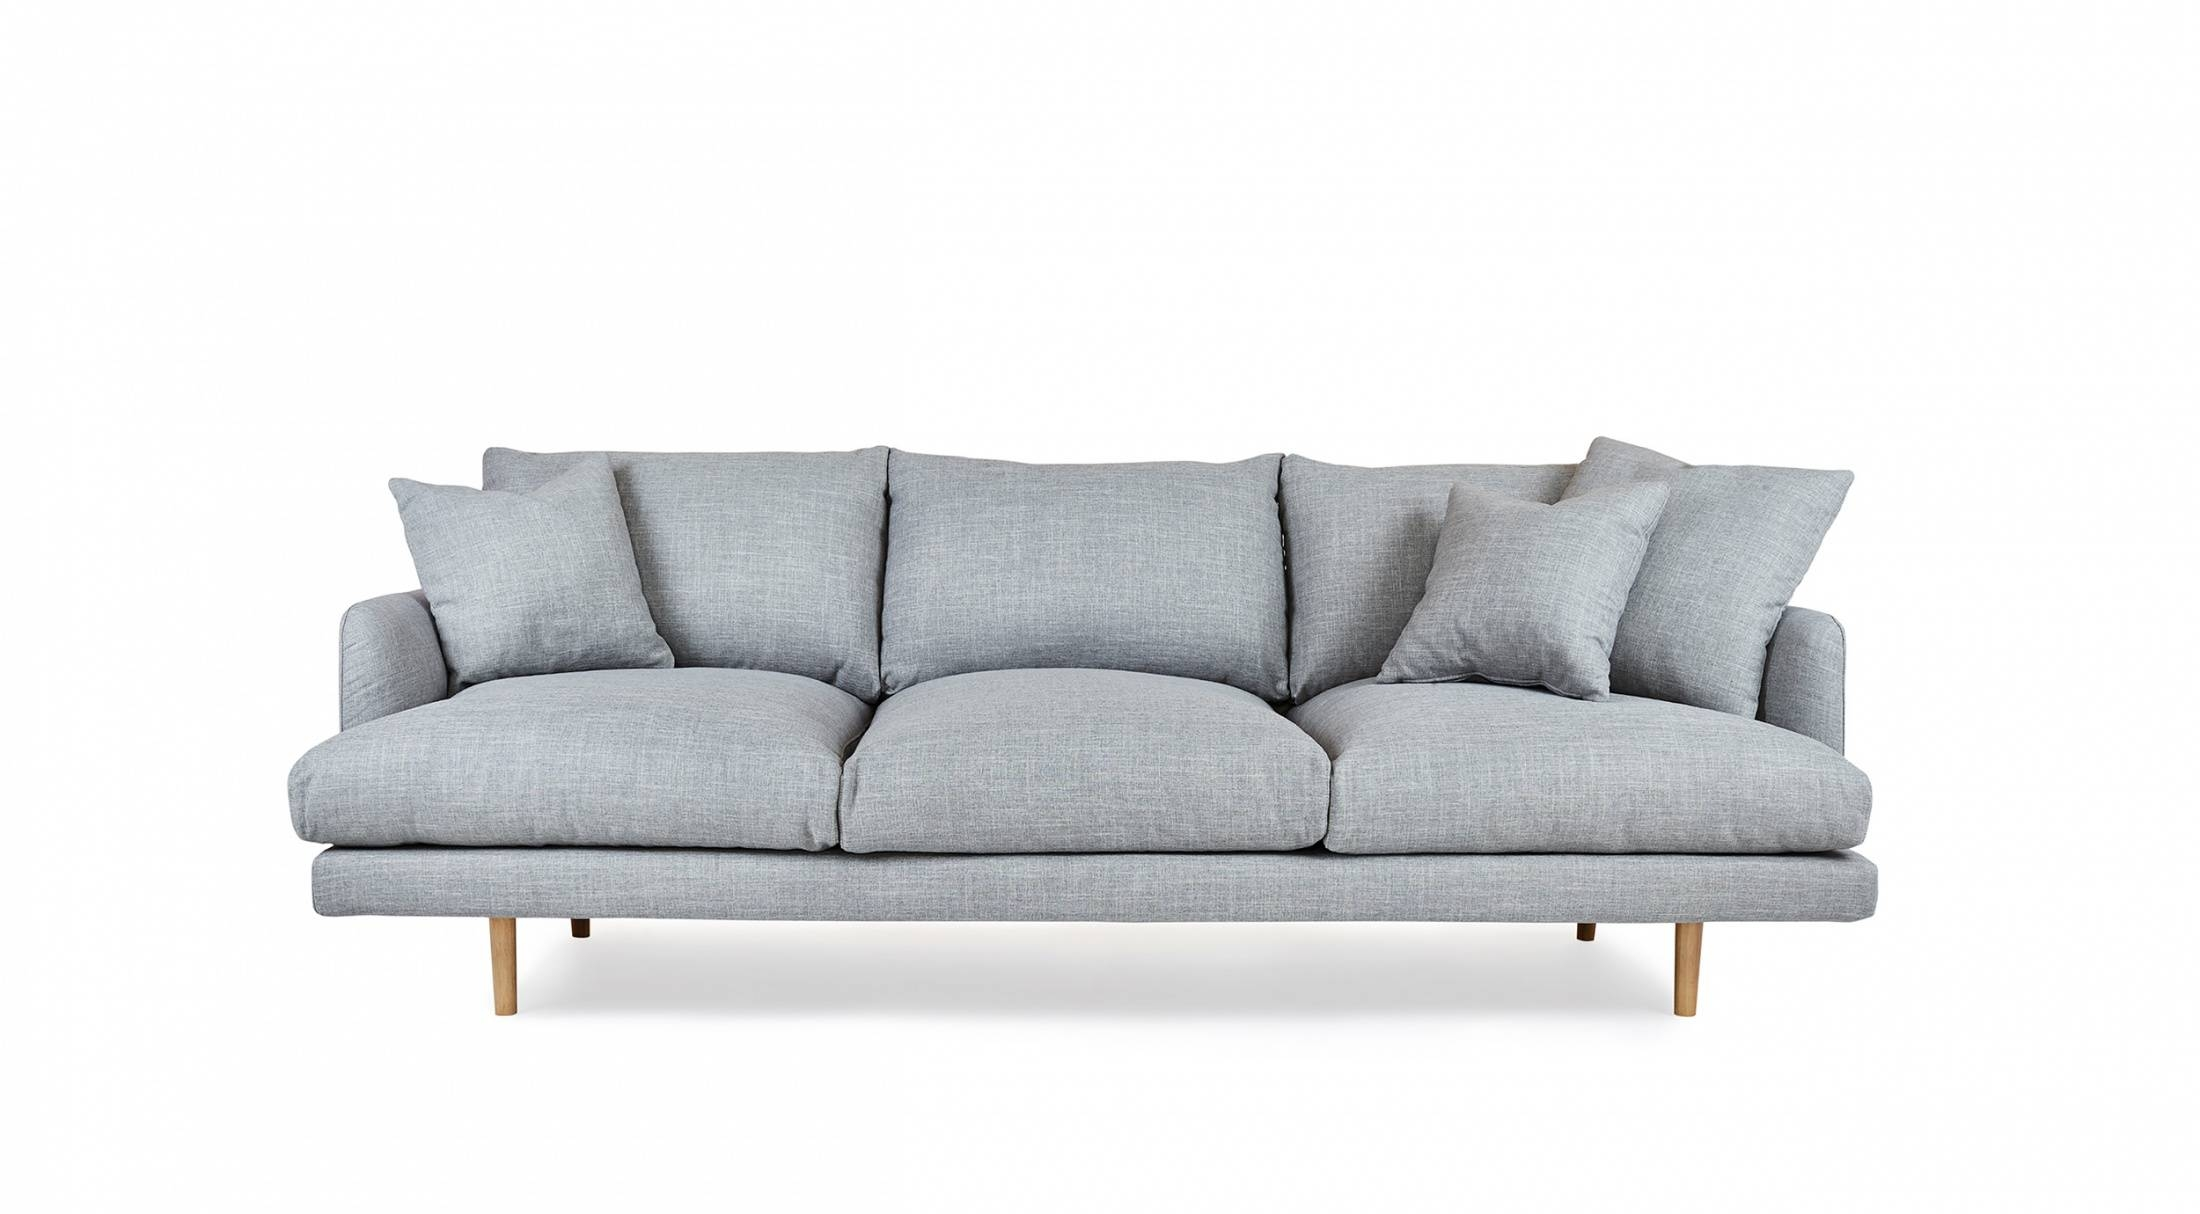 Hampton - 4 Seat Sofa | Loungelovers within 4 Seater Couch (Image 18 of 30)